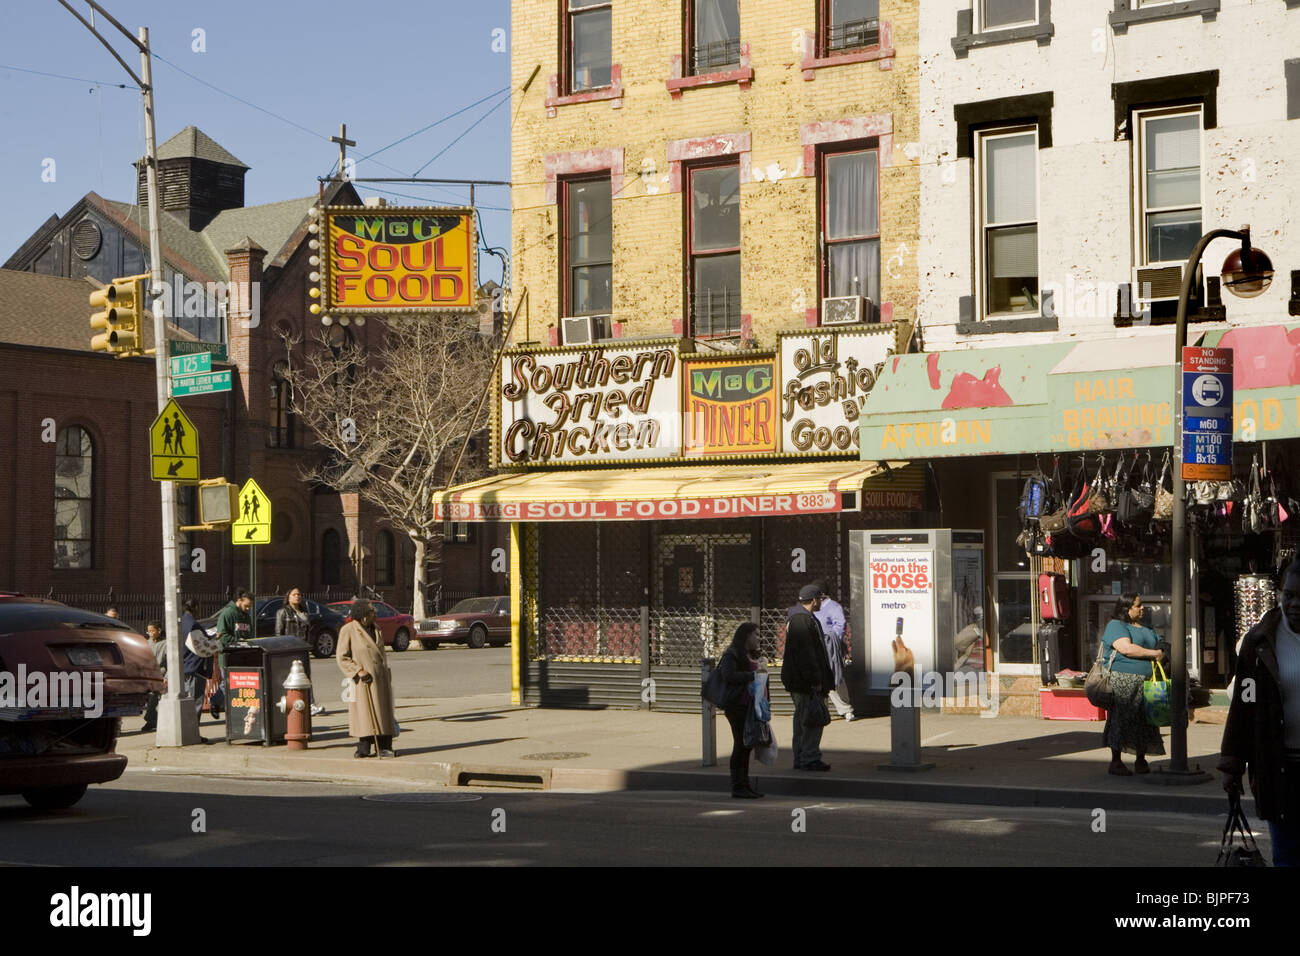 125th St. (Dr. Martin Luther King Blvd) and Morningside Ave., Harlem, New York City - Stock Image